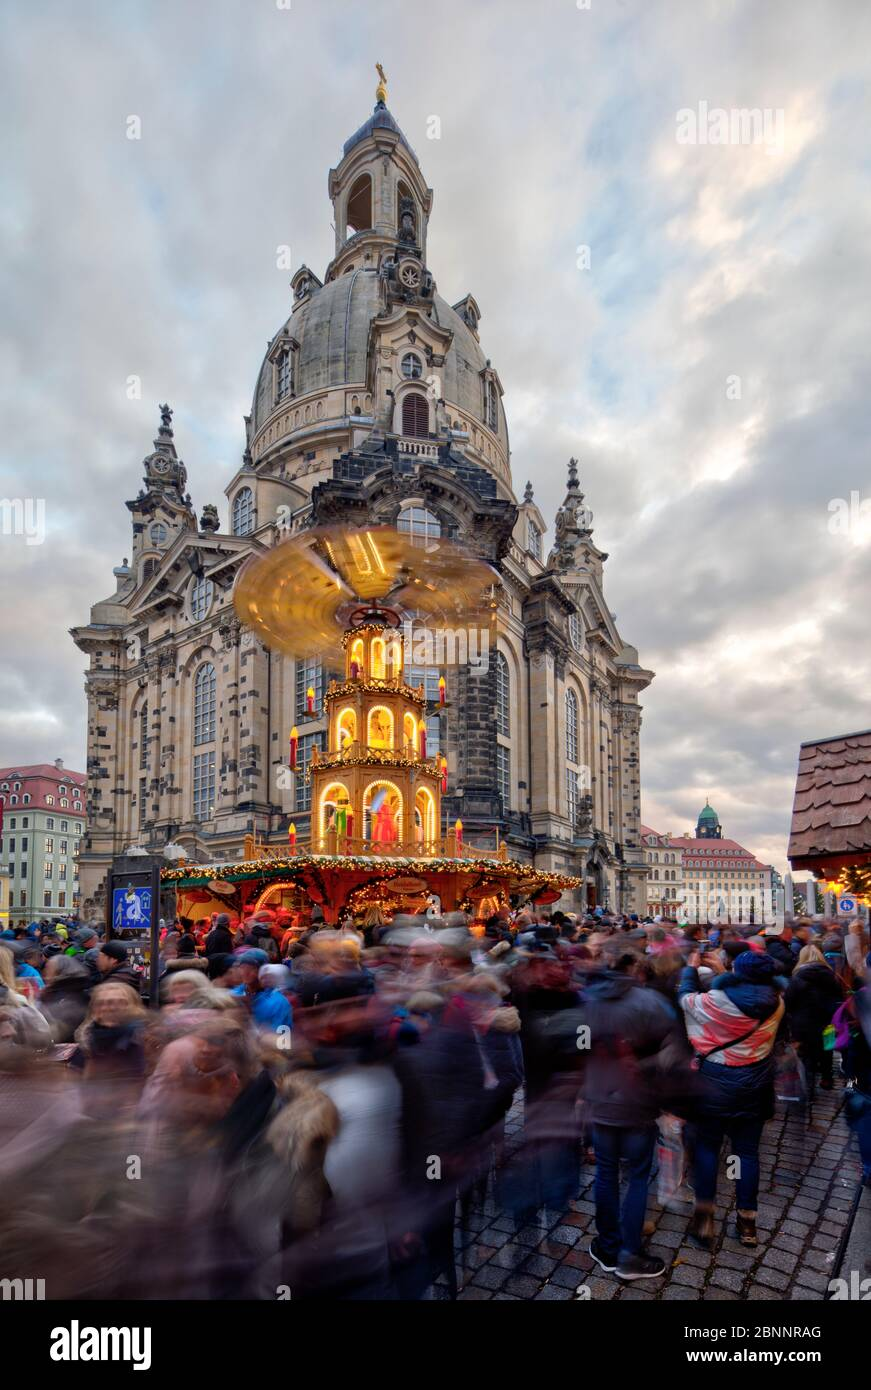 Christmas market at the Frauenkirche, Neumarkt, old town, Dresden, Saxony, Germany, Stock Photo